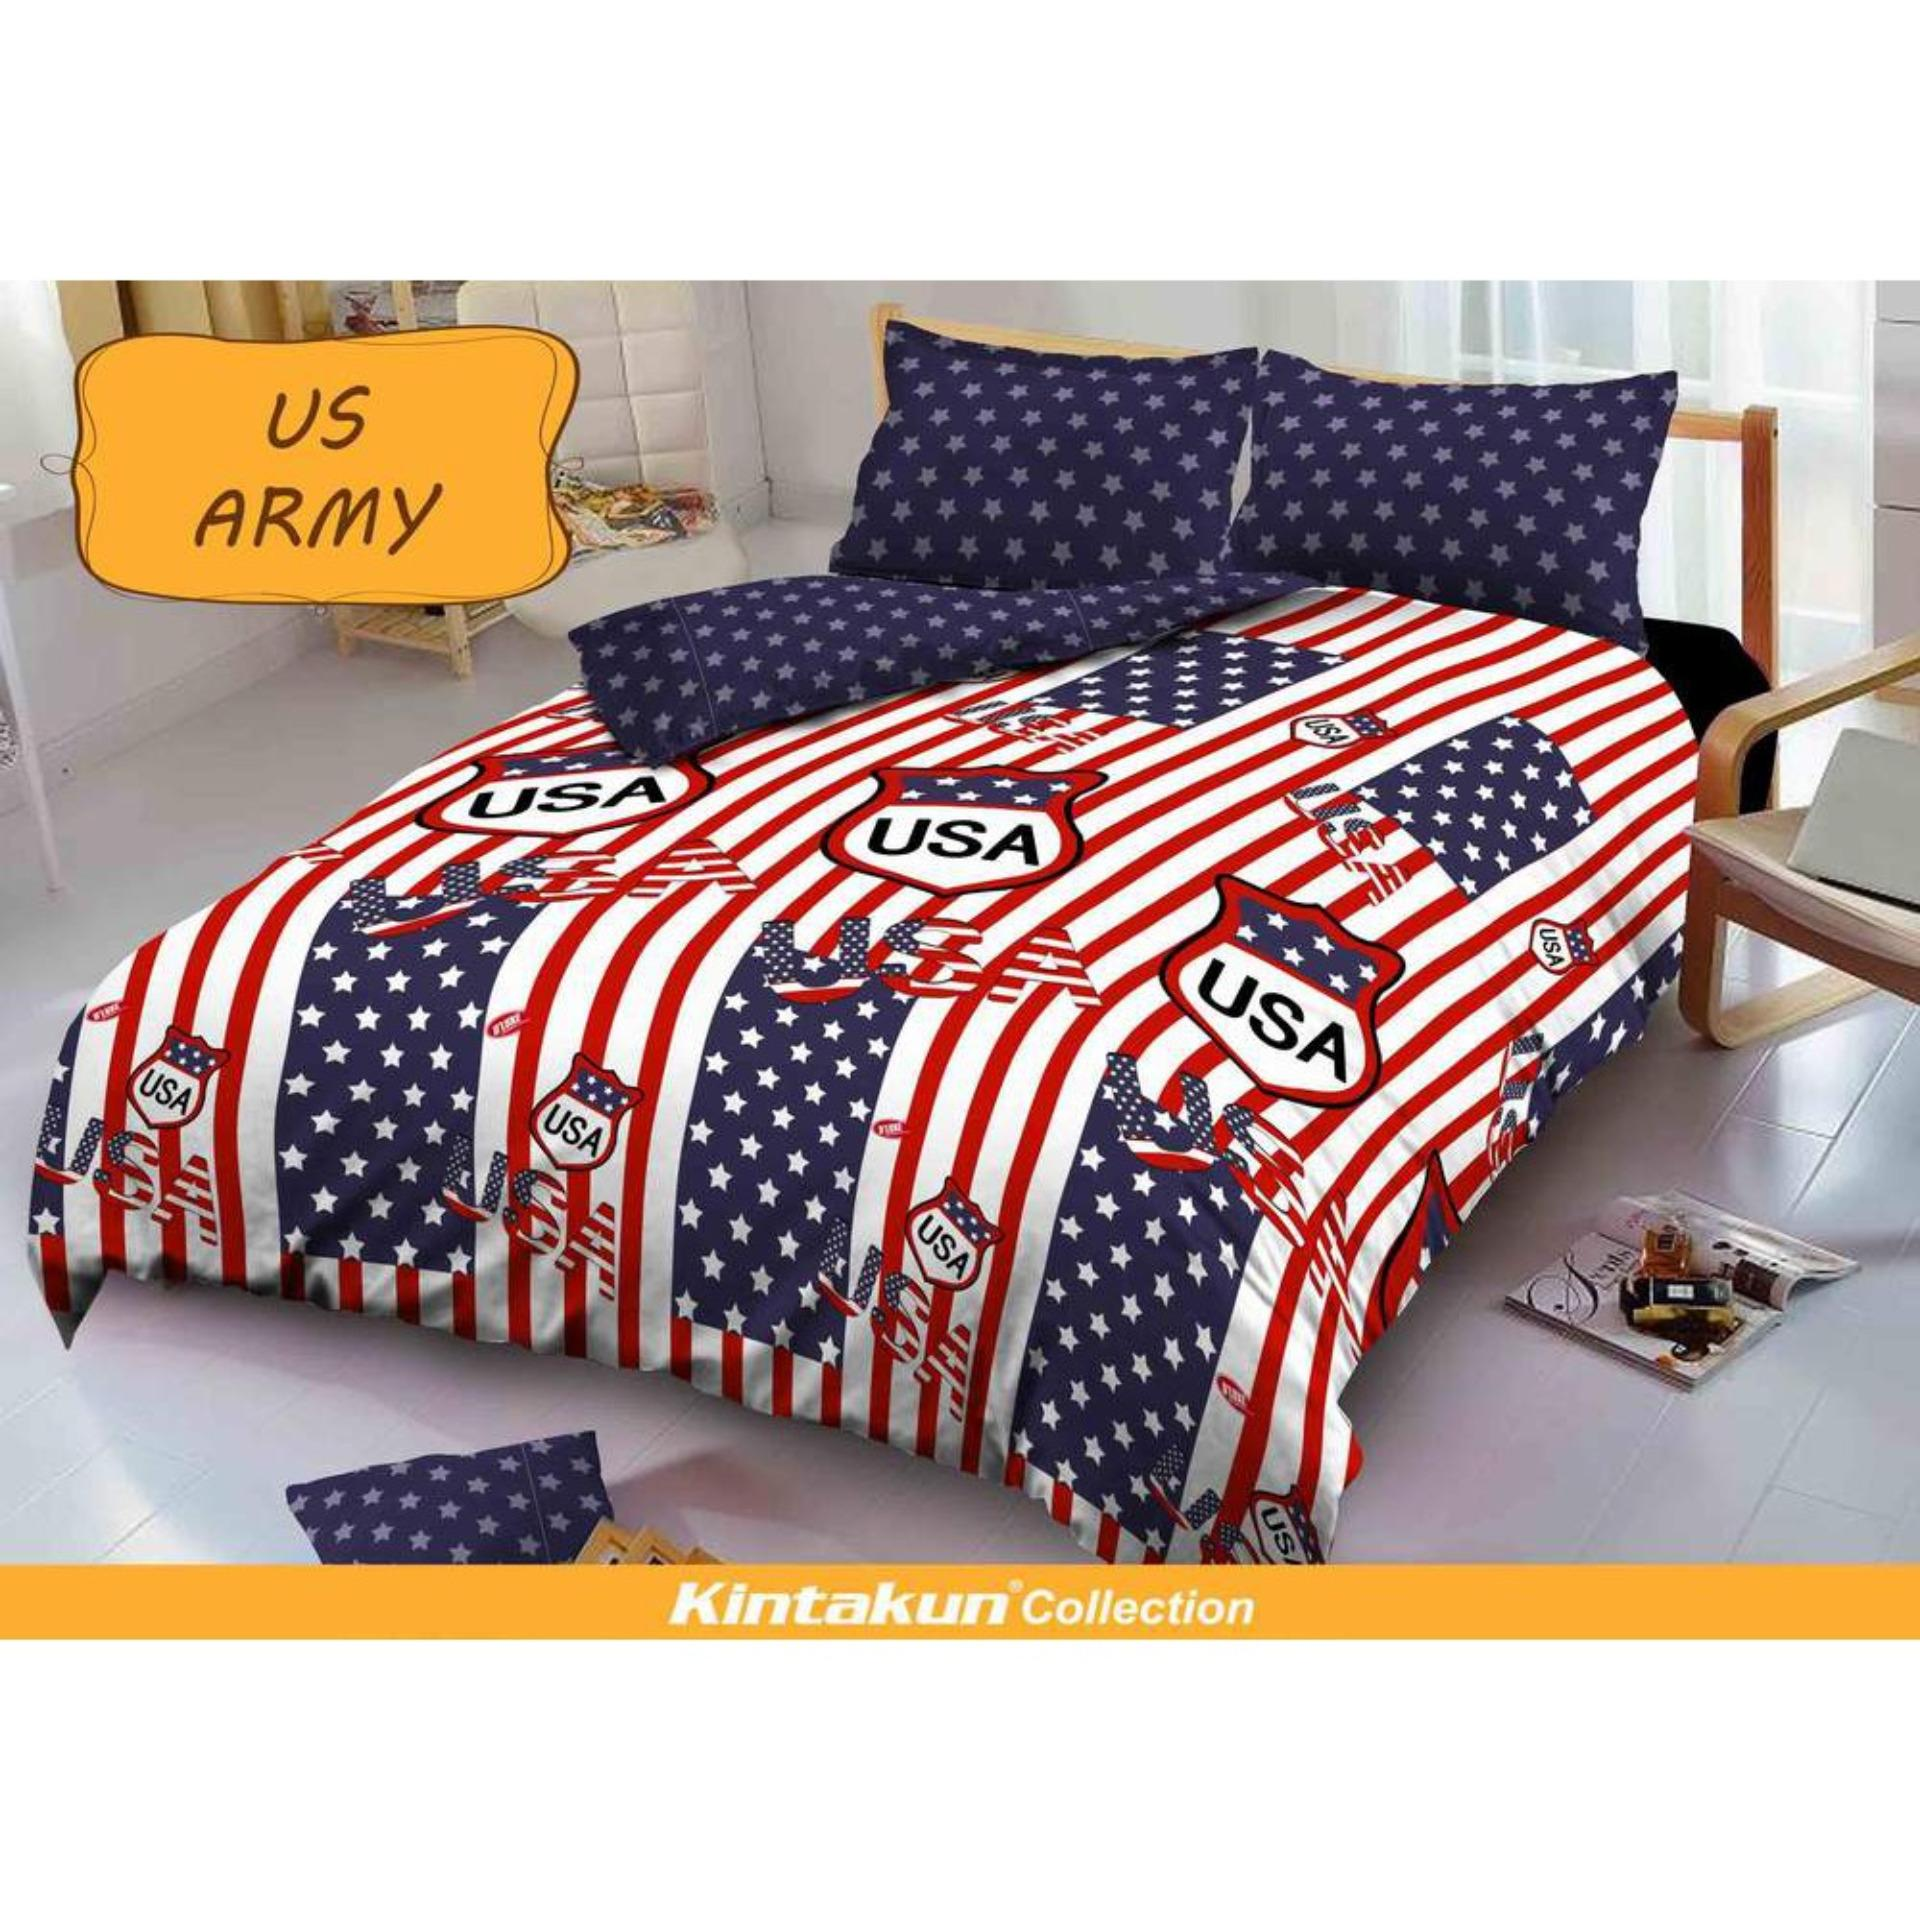 Bed Cover Set Kintakun Dluxe 3d King 180x200 Rosana Bedcover Sprei Rumbai 180 X 200 B2 Givency Source